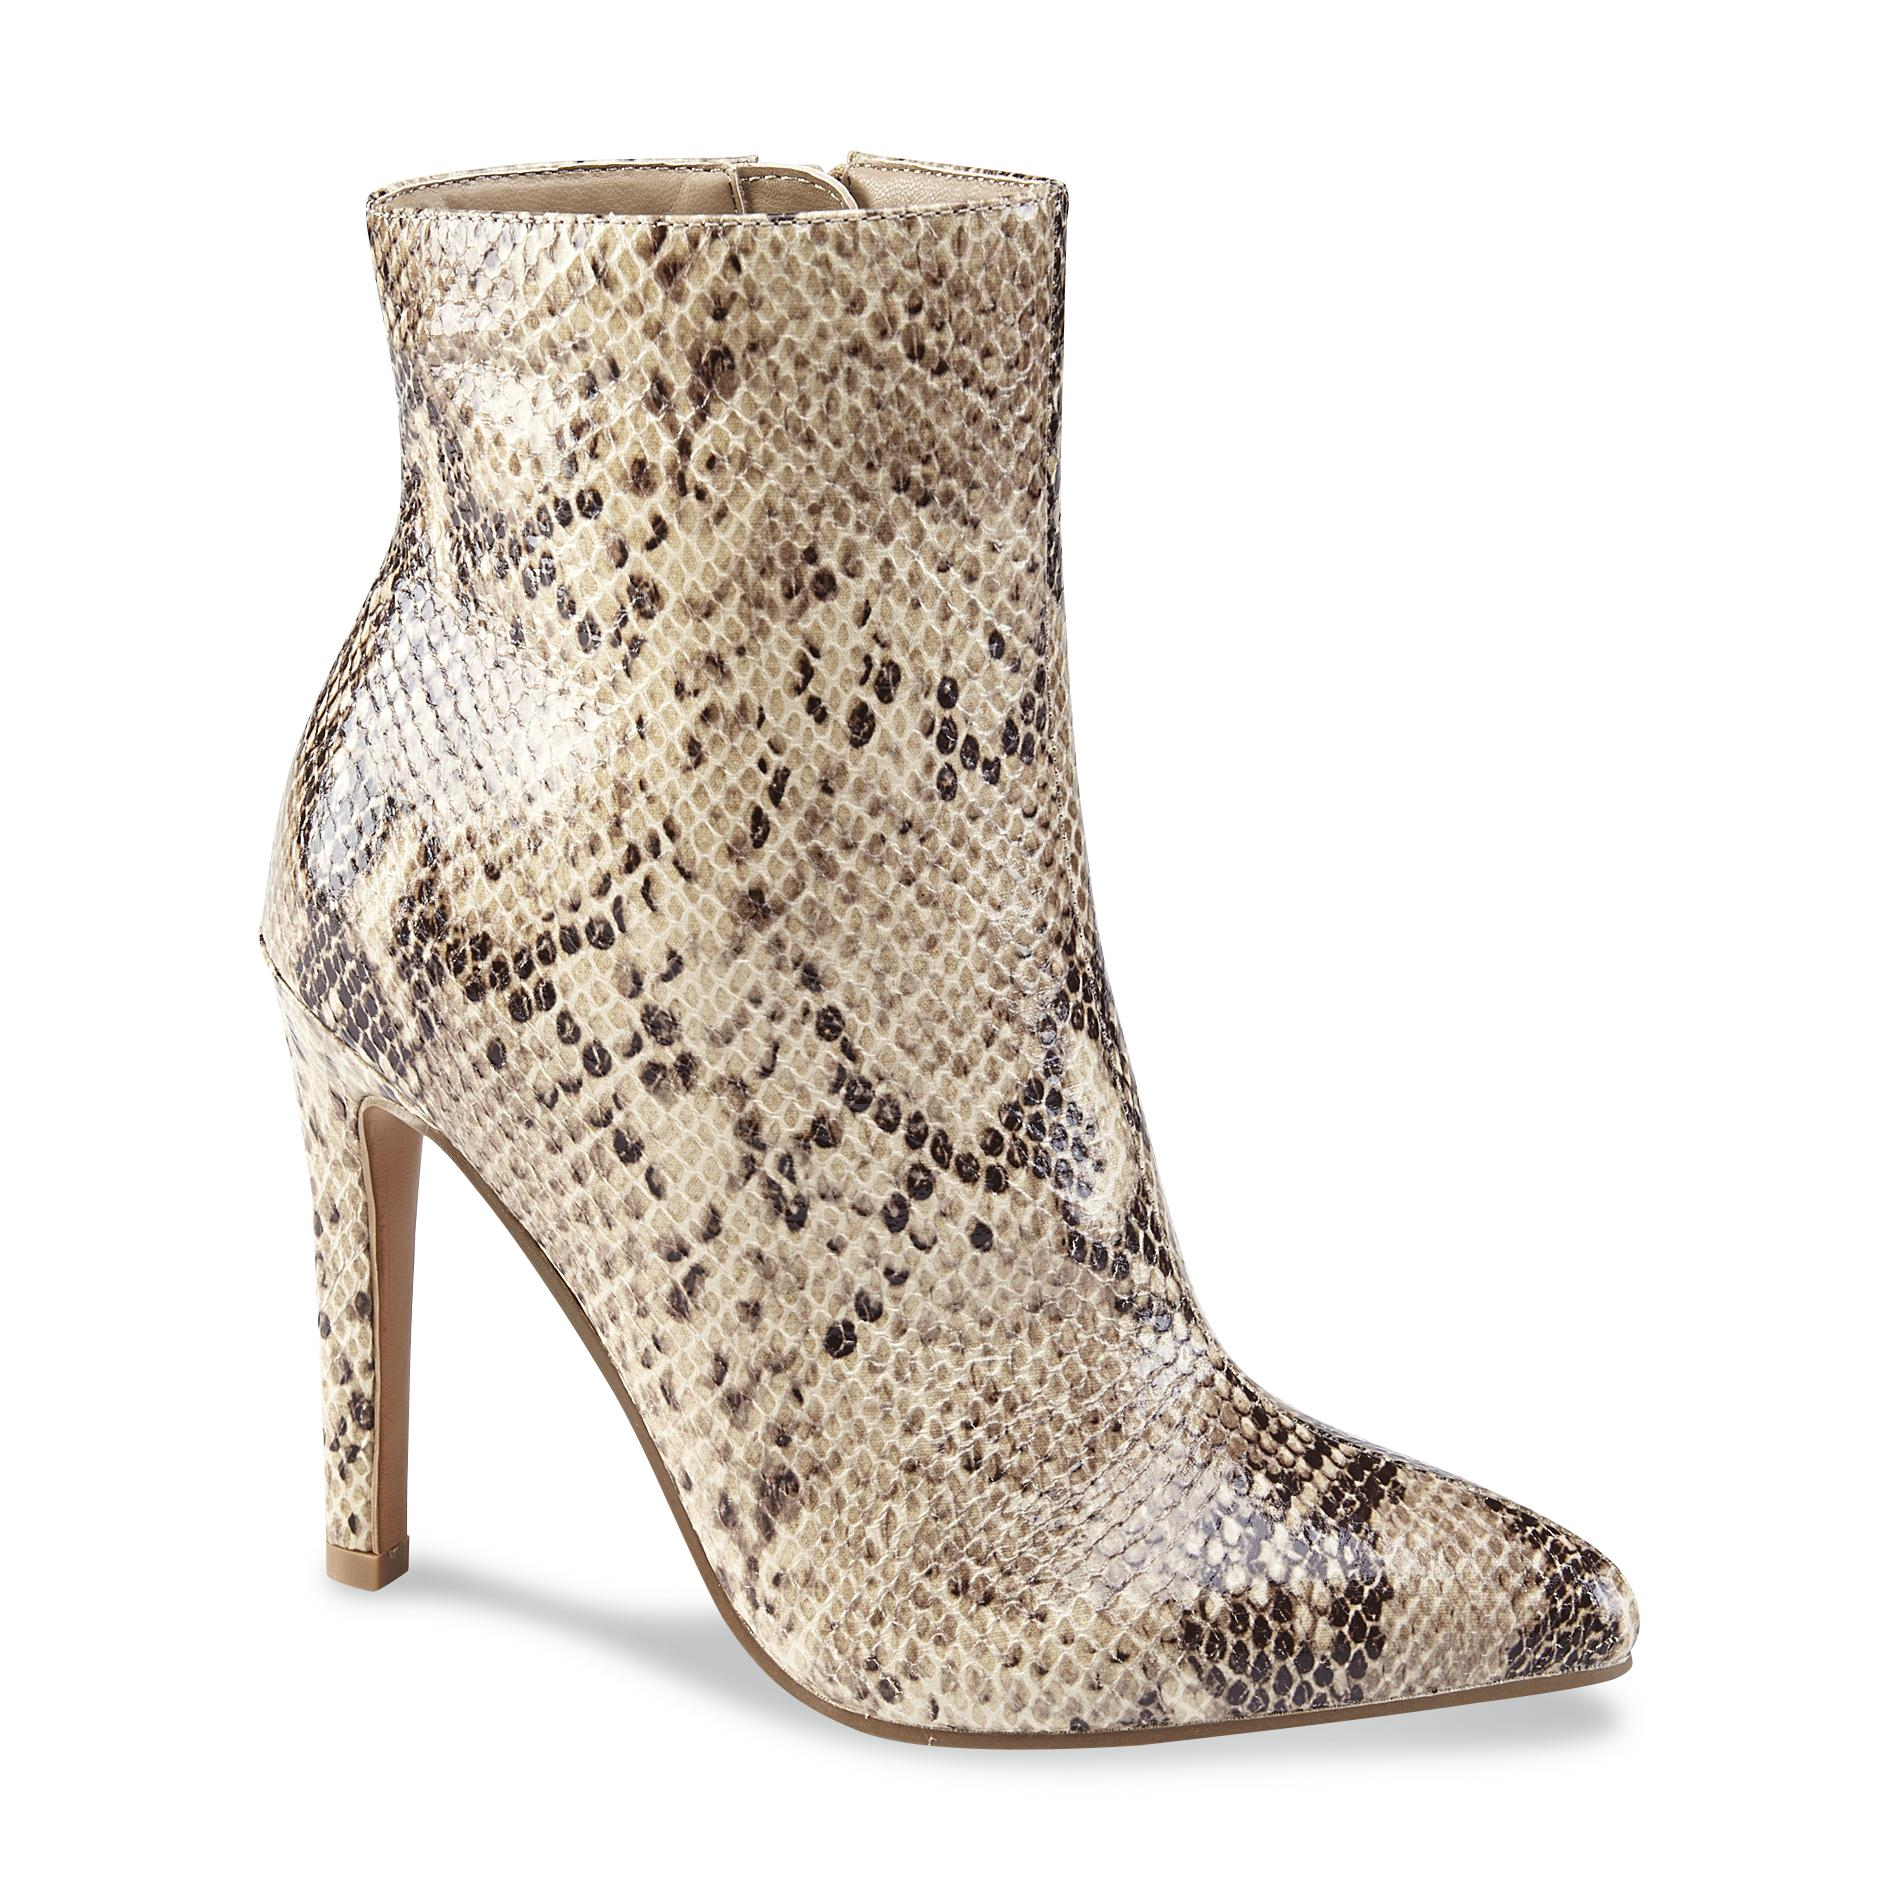 Metaphor Women's Slither Brown/Synthetic Snakeskin Ankle Boot